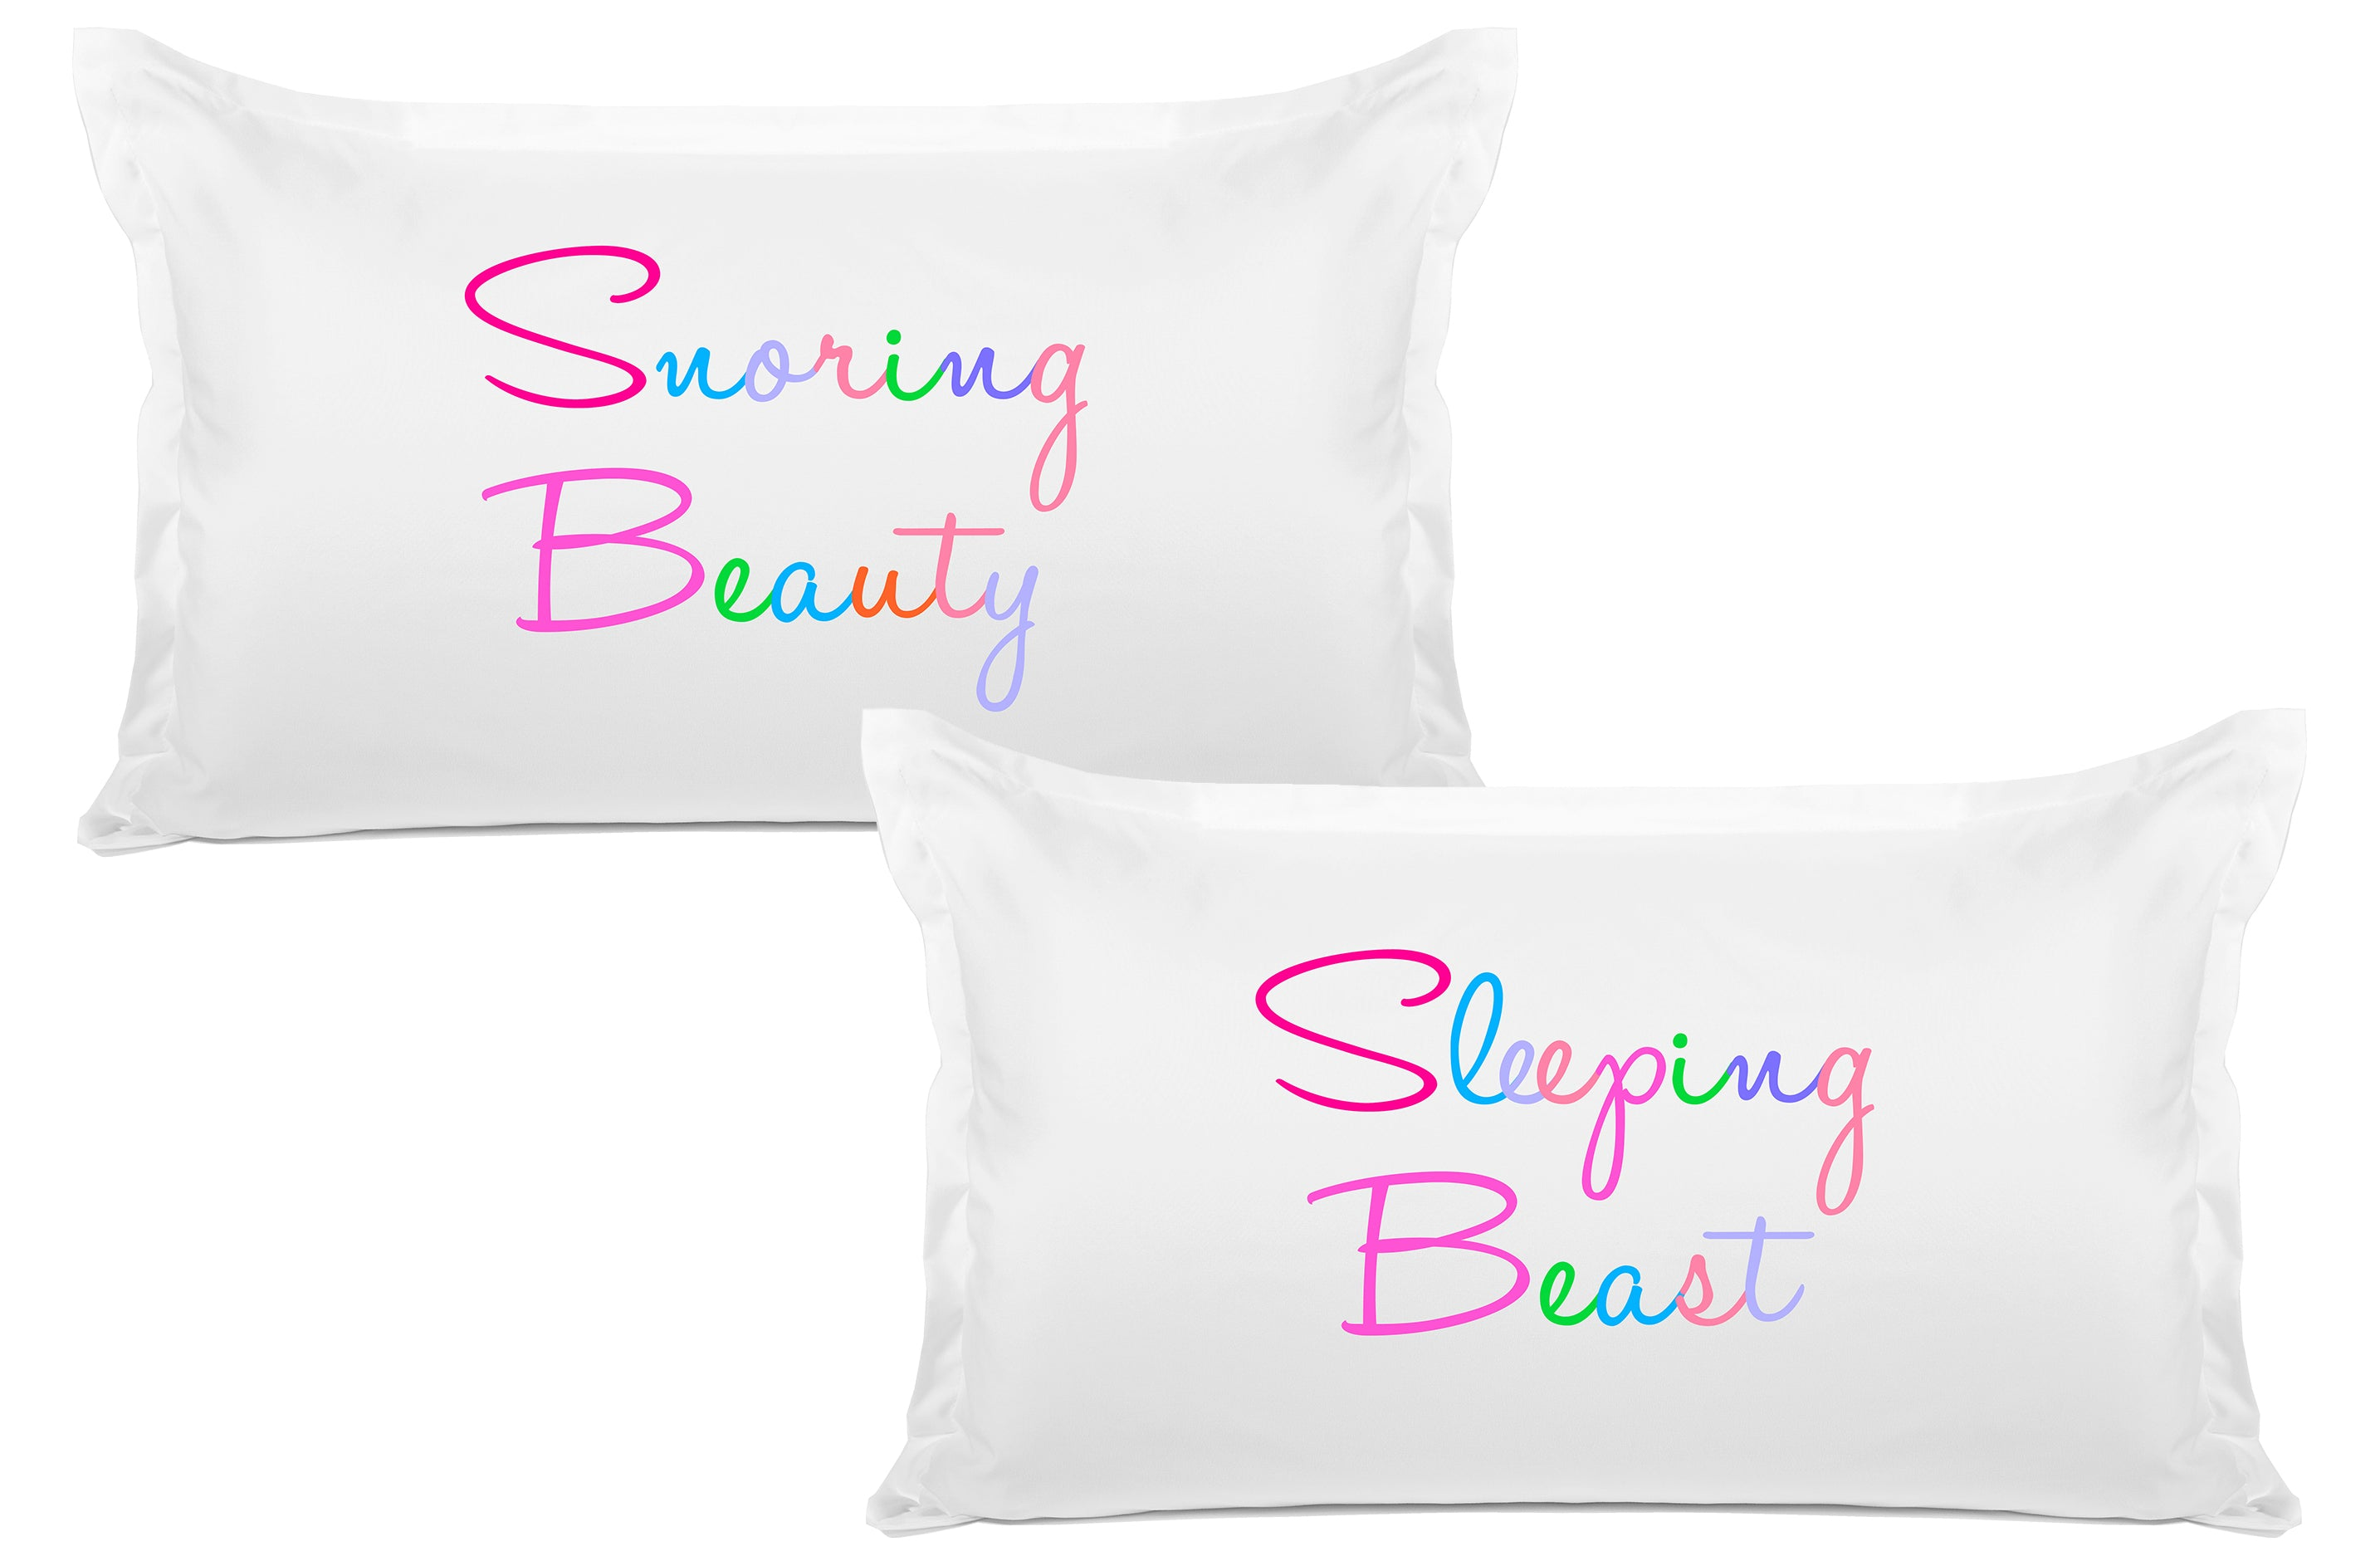 Snoring Beauty, Sleeping Beast pillow sets Di Lewis bedroom decor